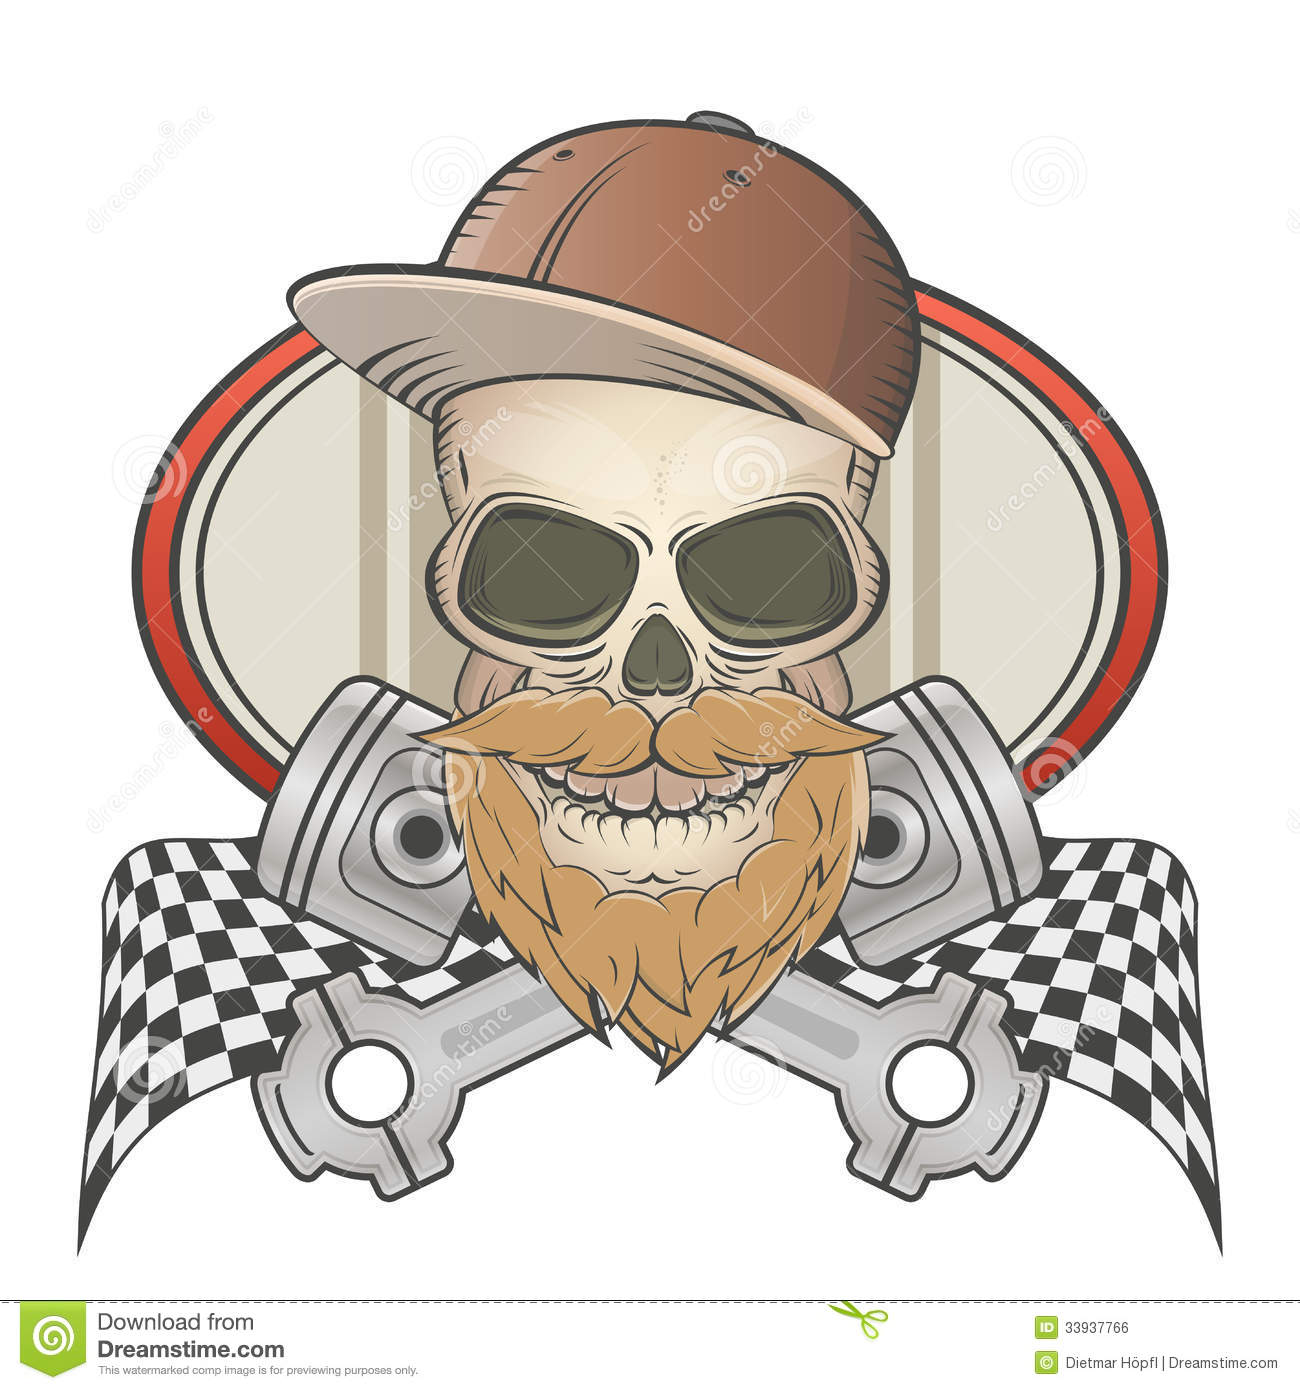 Illustration of bearded racing skull with crossed pistons.